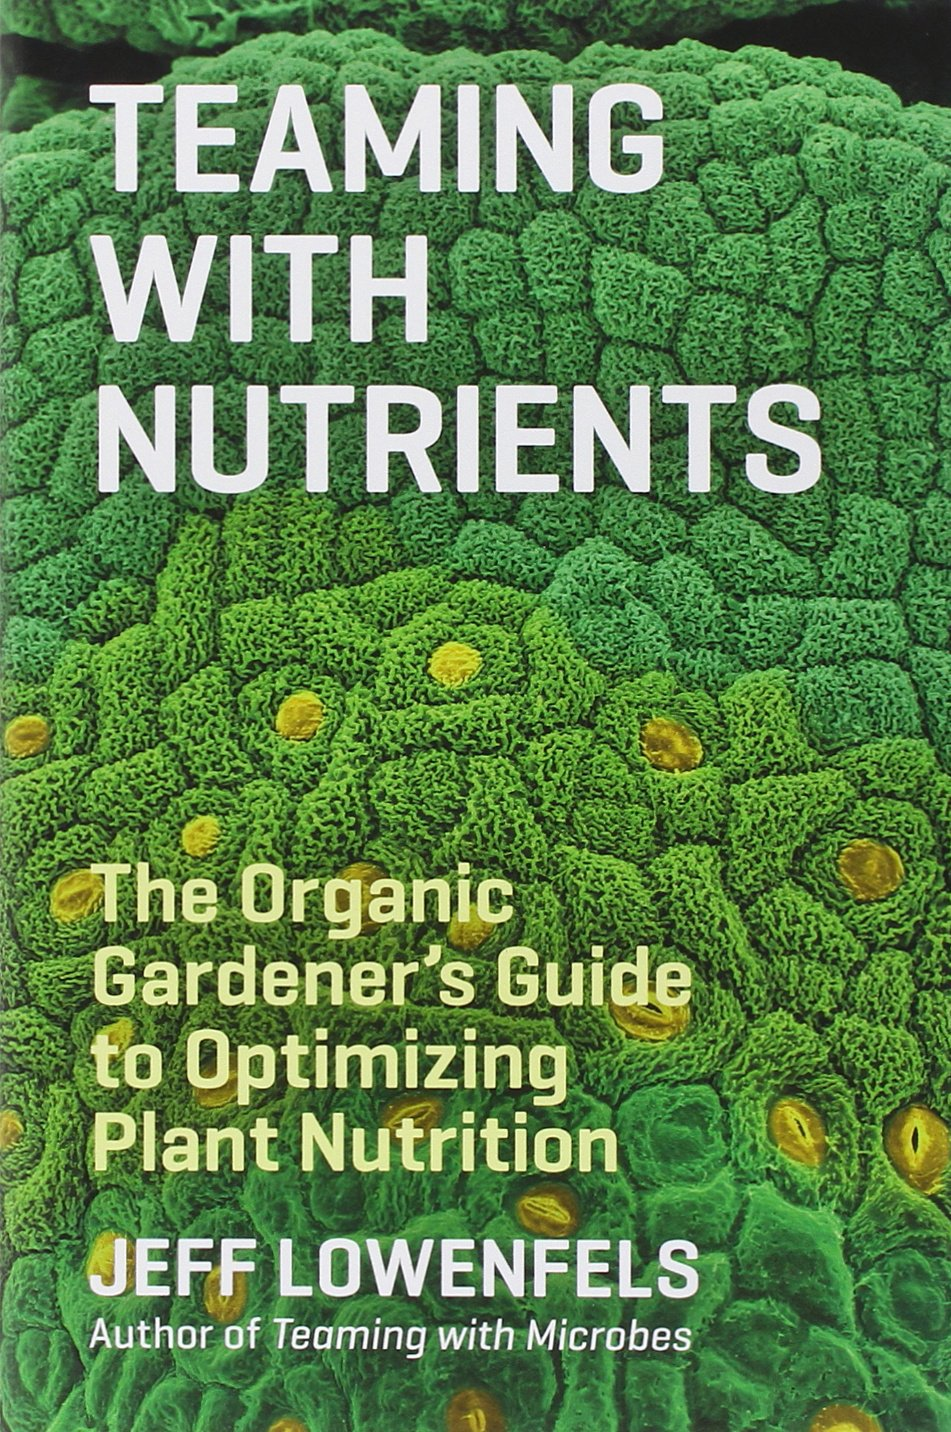 teaming-with-nutrients-the-organic-gardeners-guide-to-optimizing-plant-nutrition_3229014